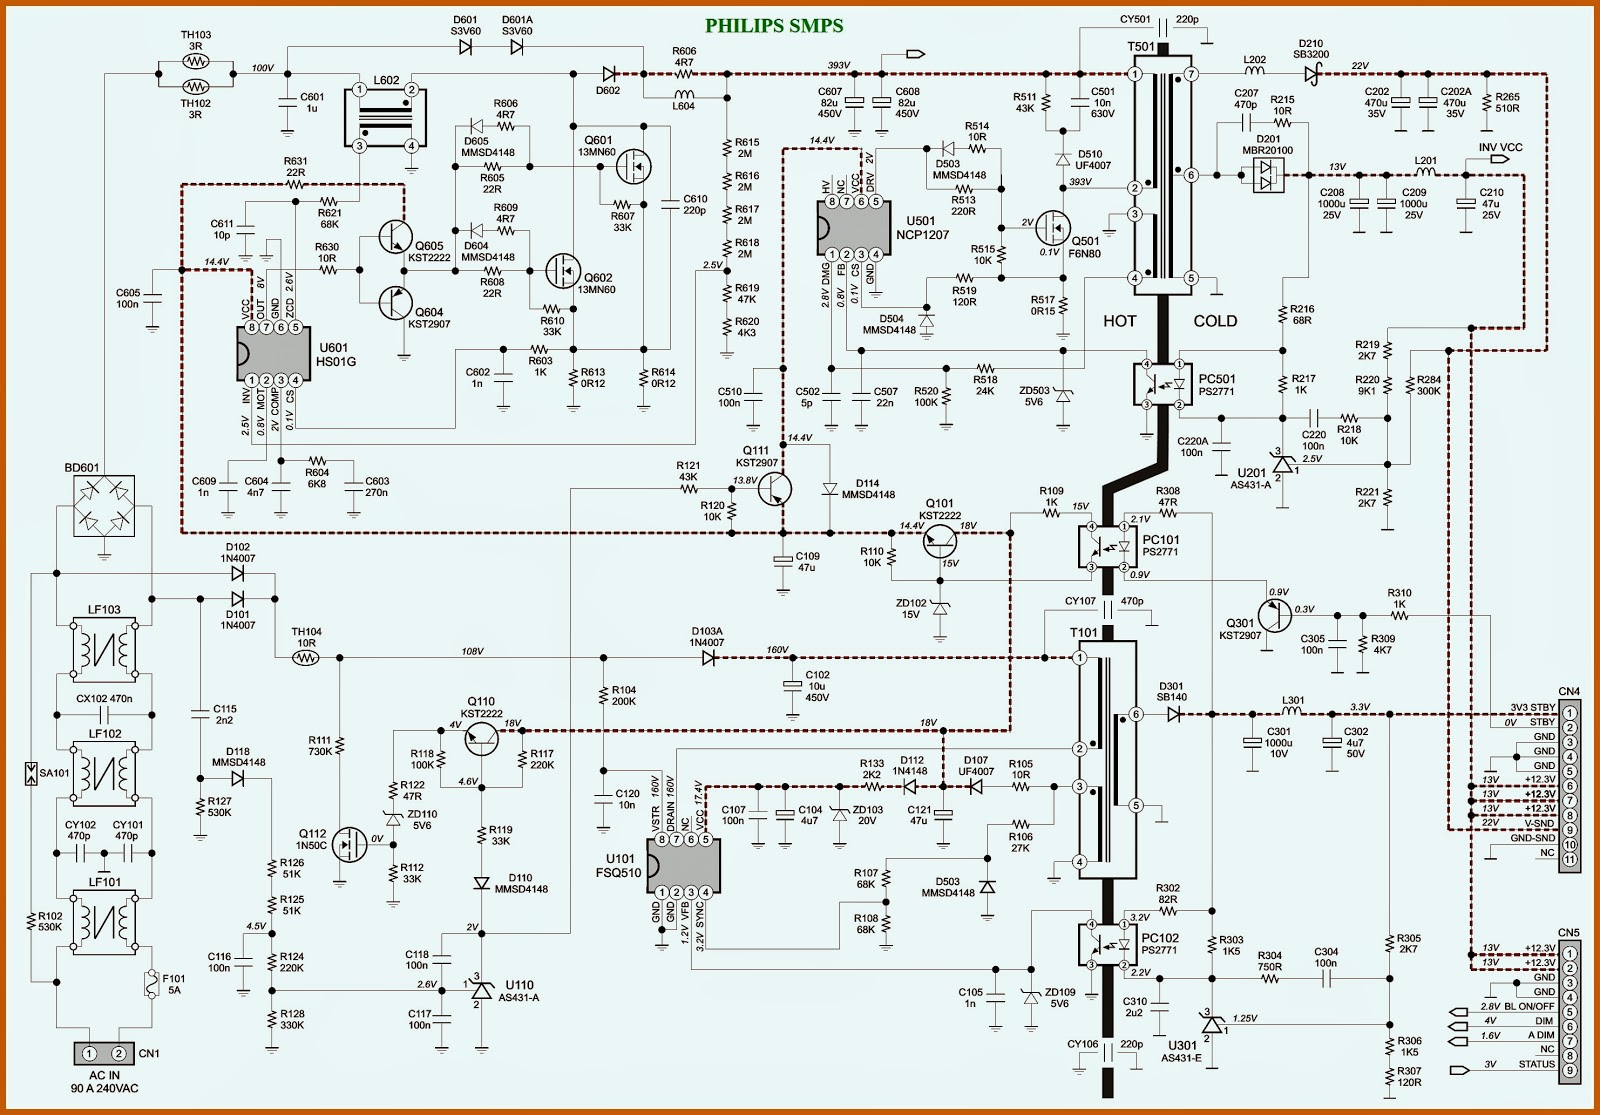 lcd tv circuit diagram wiring diagram db led tv circuit diagram led tv circuit diagram [ 1600 x 1115 Pixel ]